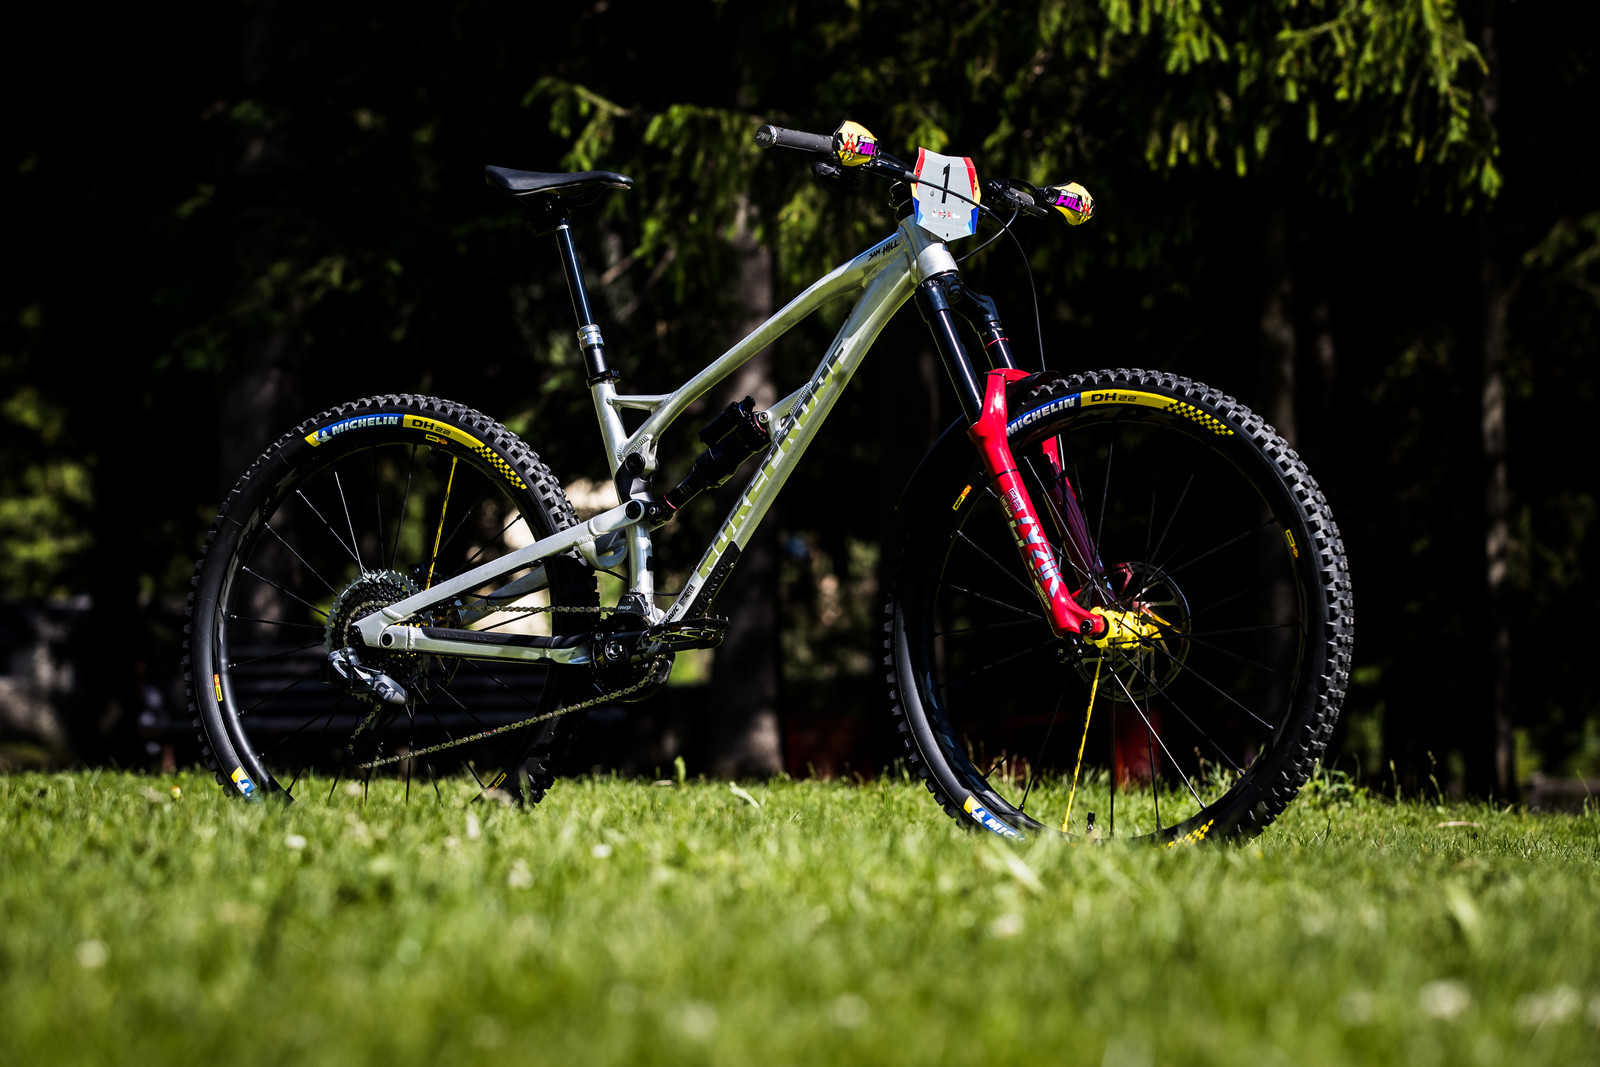 Sam Hill's Updated Prototype Nukeproof Mega 29 with SRAM AXS - Sam Hill's Updated Prototype Nukeproof Mega 29 with SRAM AXS - Mountain Biking Pictures - Vital MTB